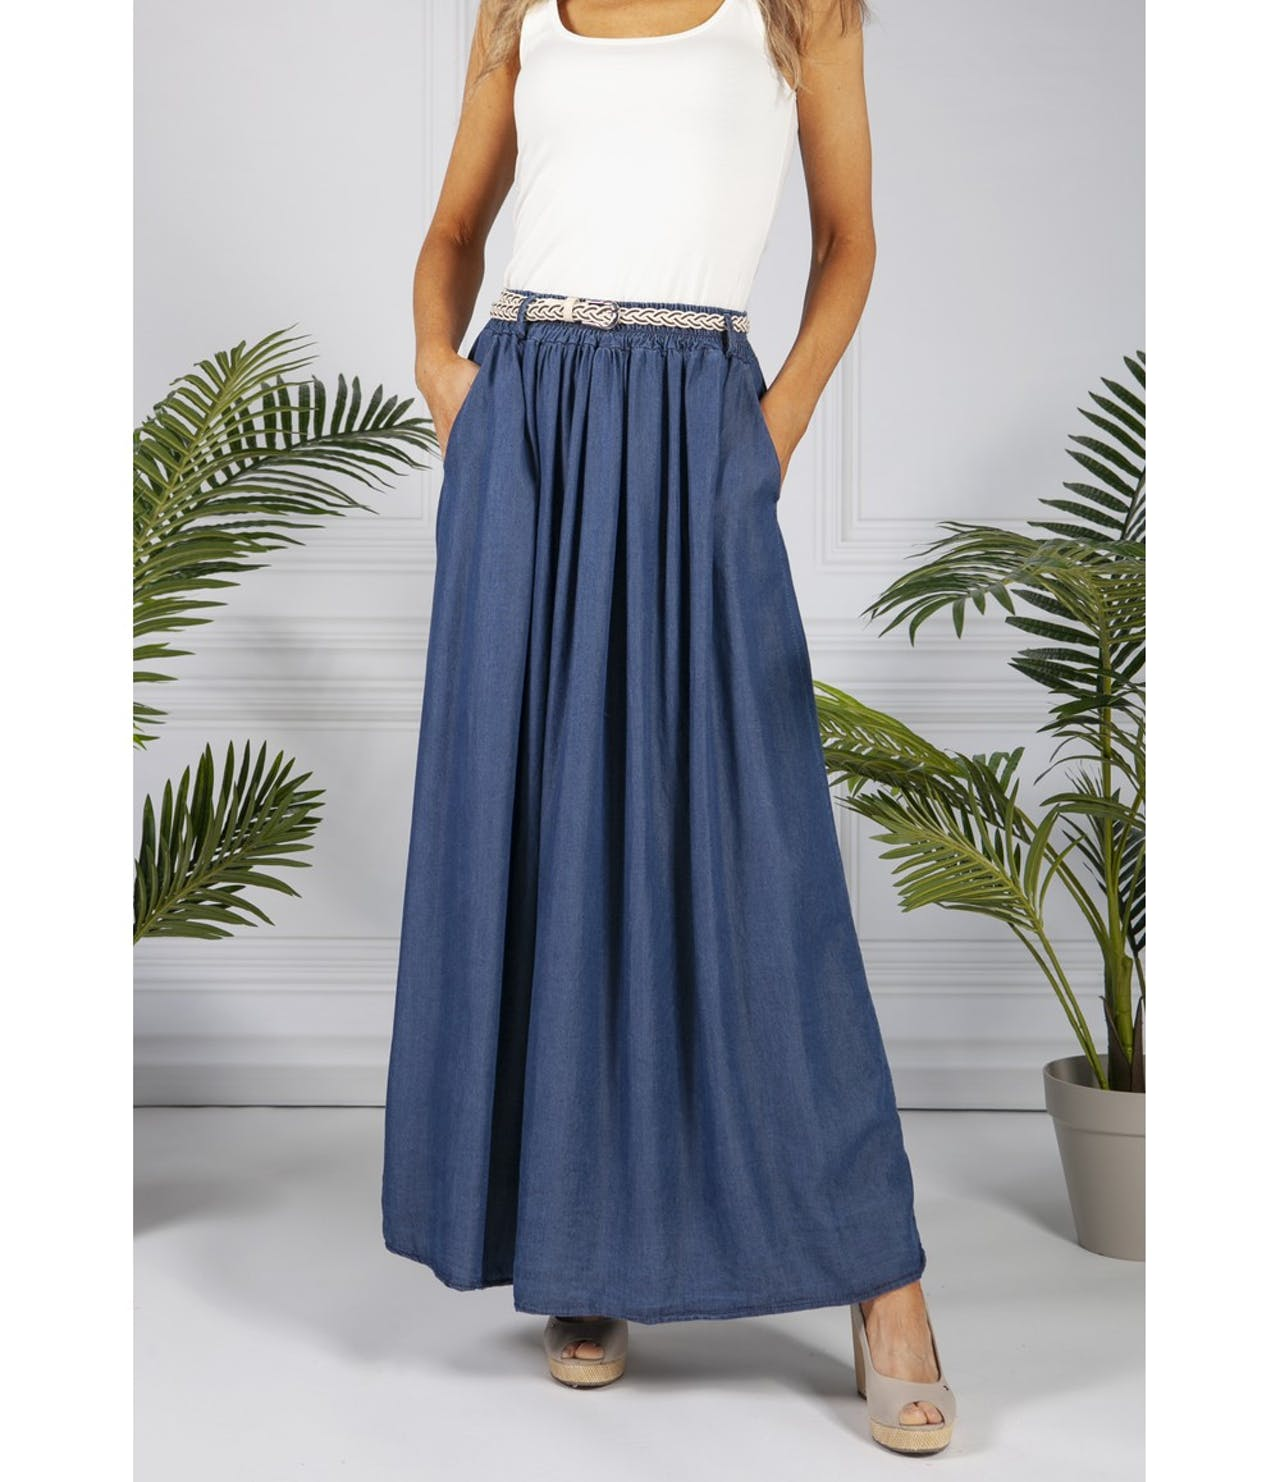 Pamela Scott Denim Blue Maxi Skirt